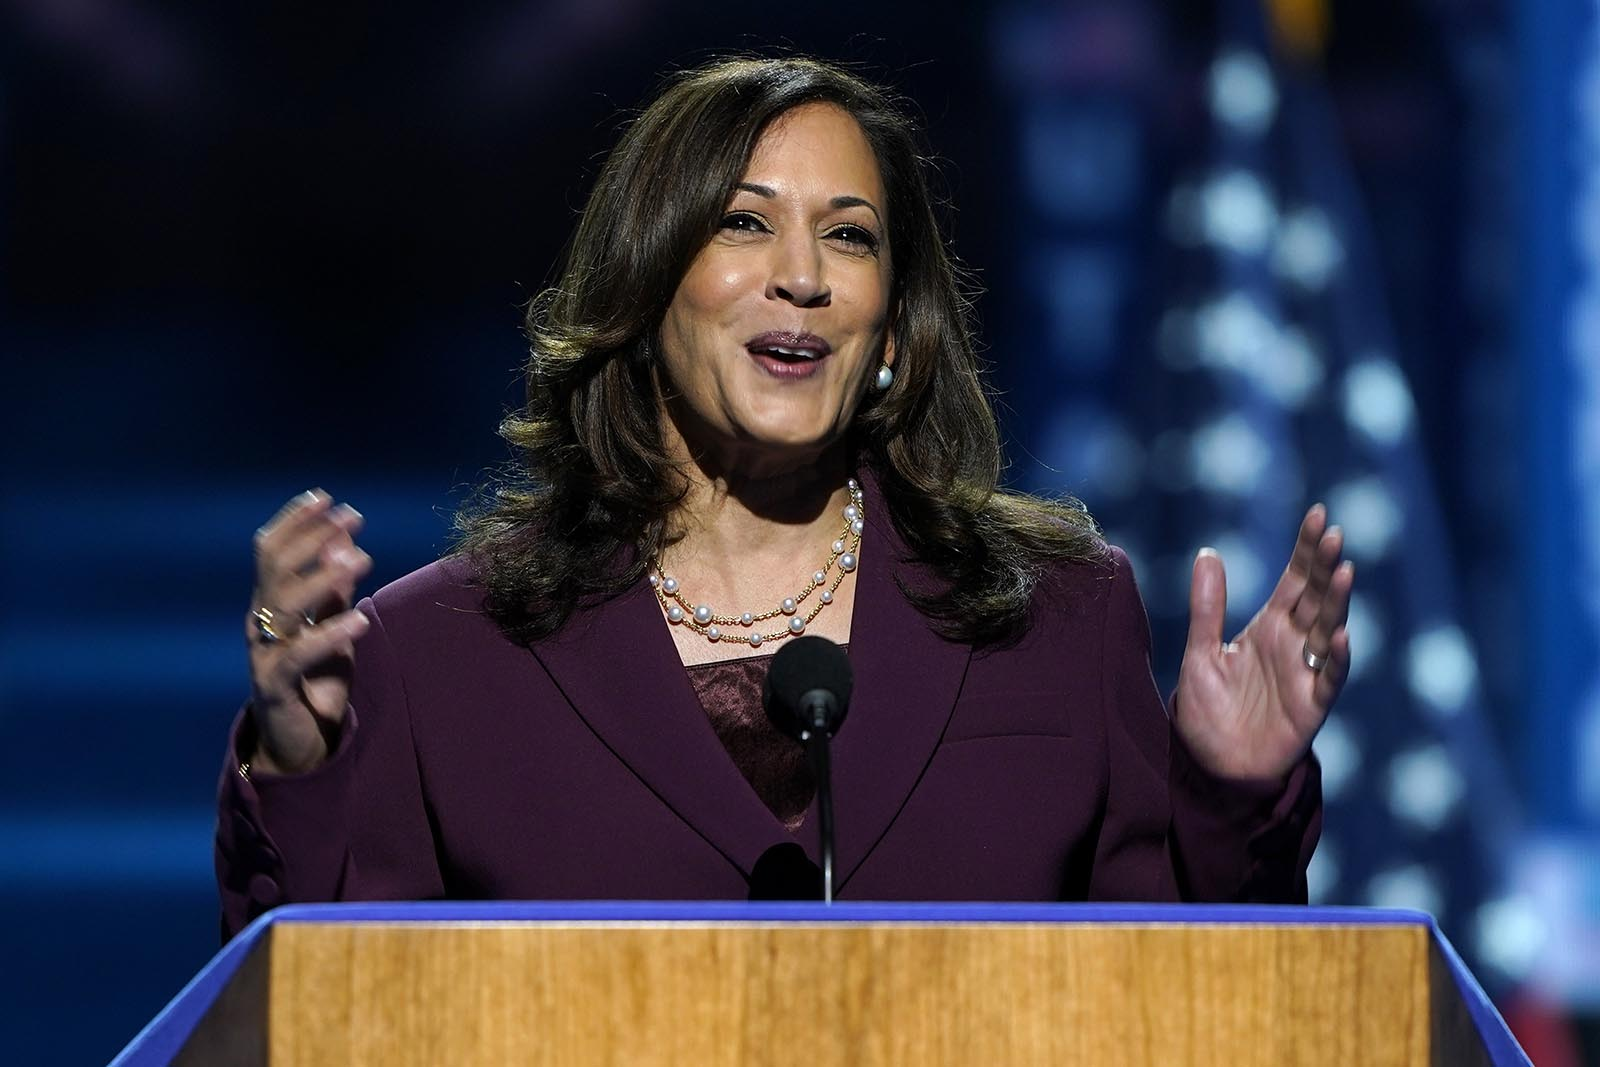 Democratic vice presidential candidate Sen. Kamala Harris, D-Calif., speaks during the third day of the Democratic National Convention, Wednesday, Aug. 19.